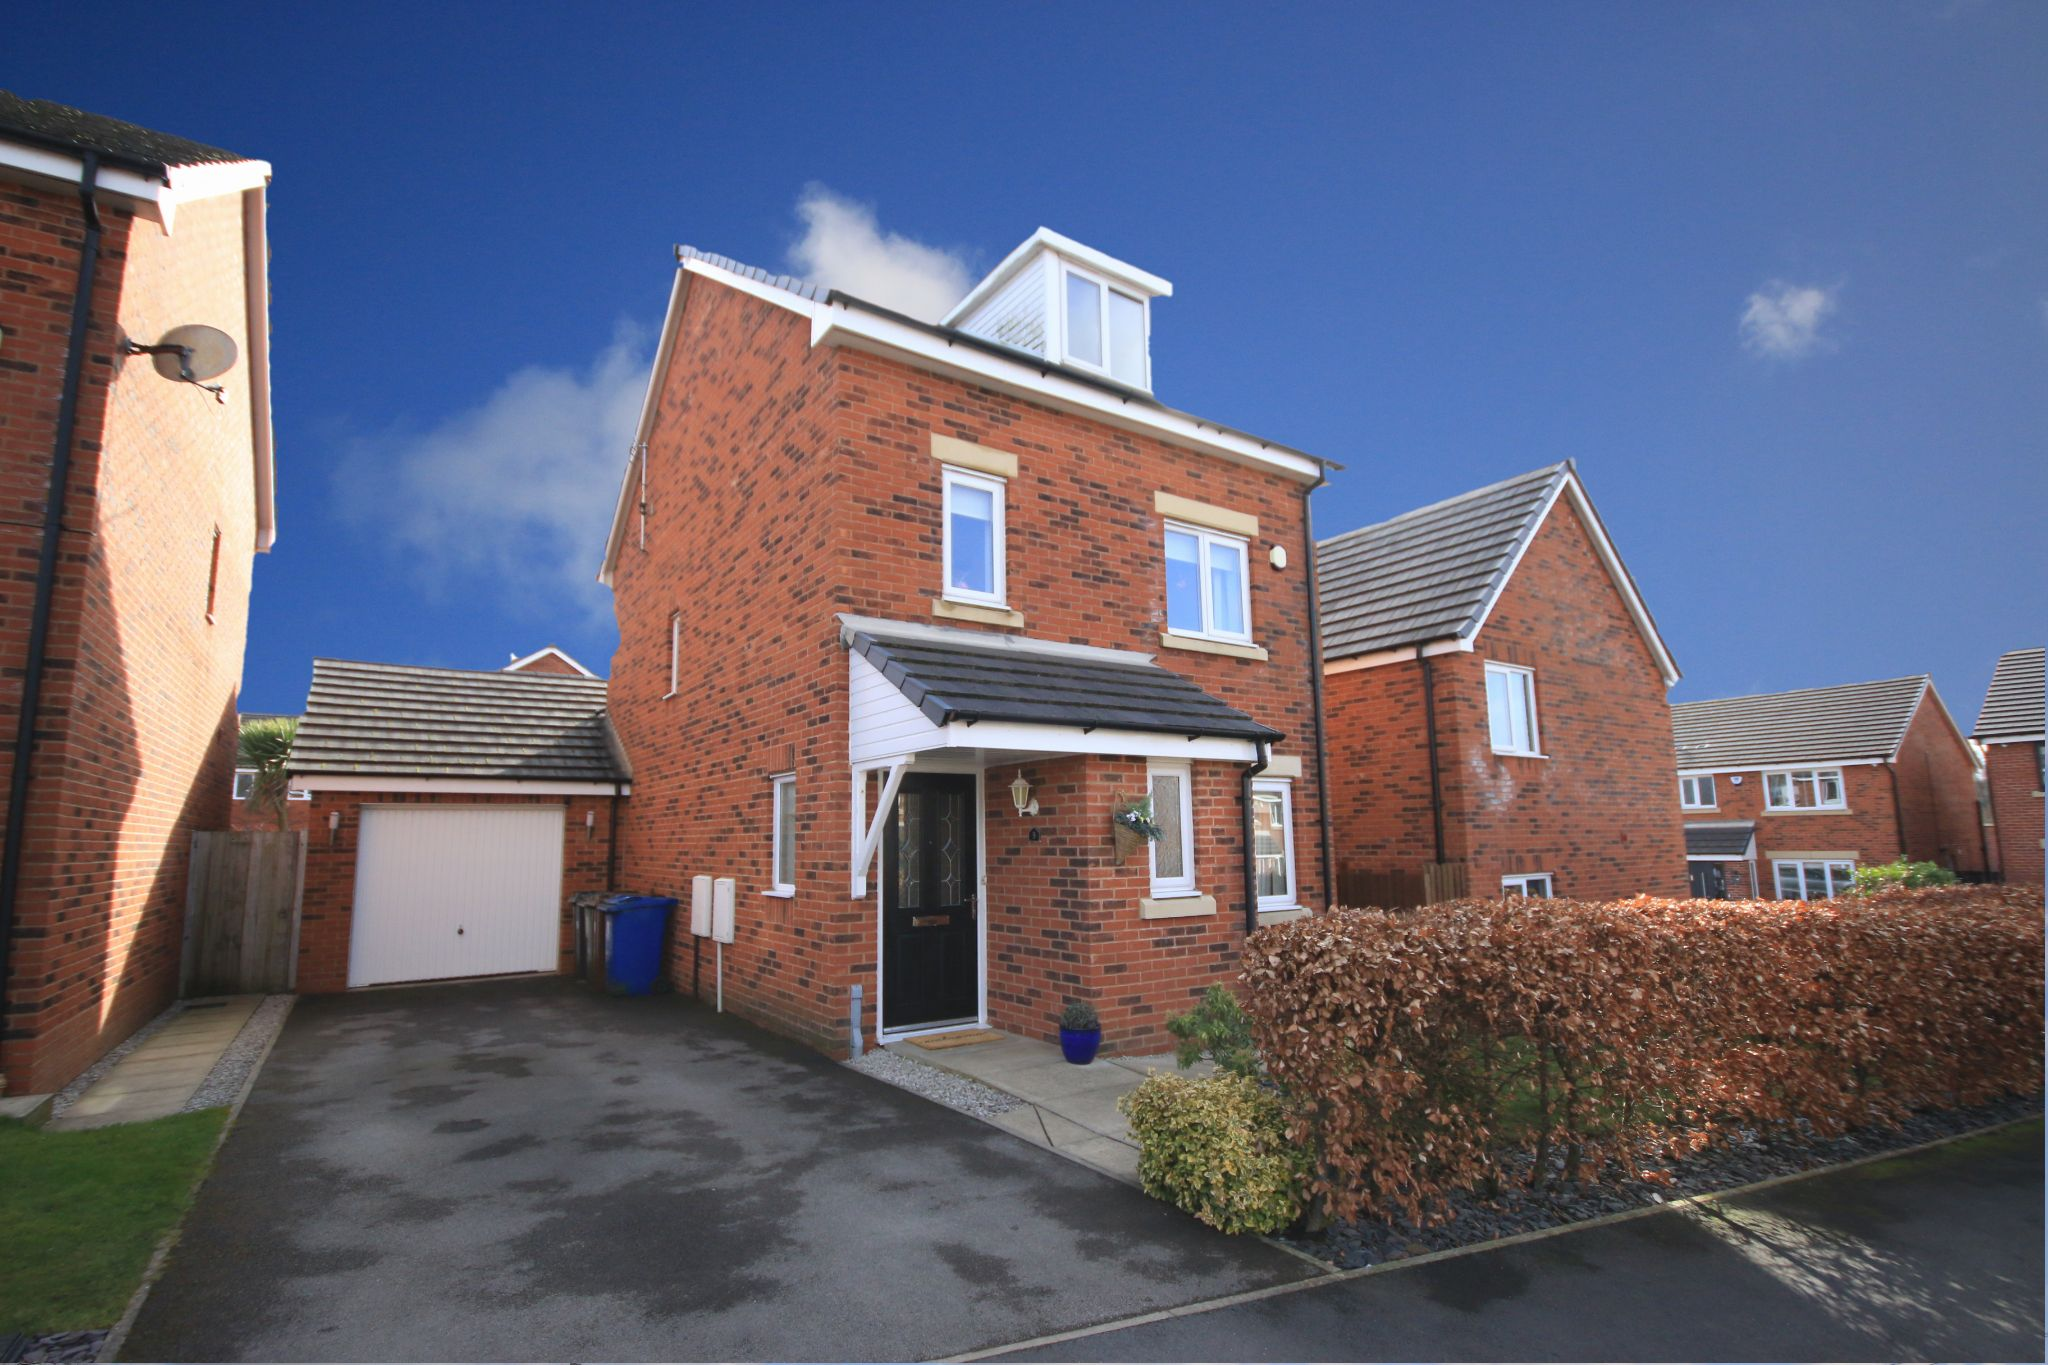 4 bedroom detached house SSTC in Wigan - Photograph 1.